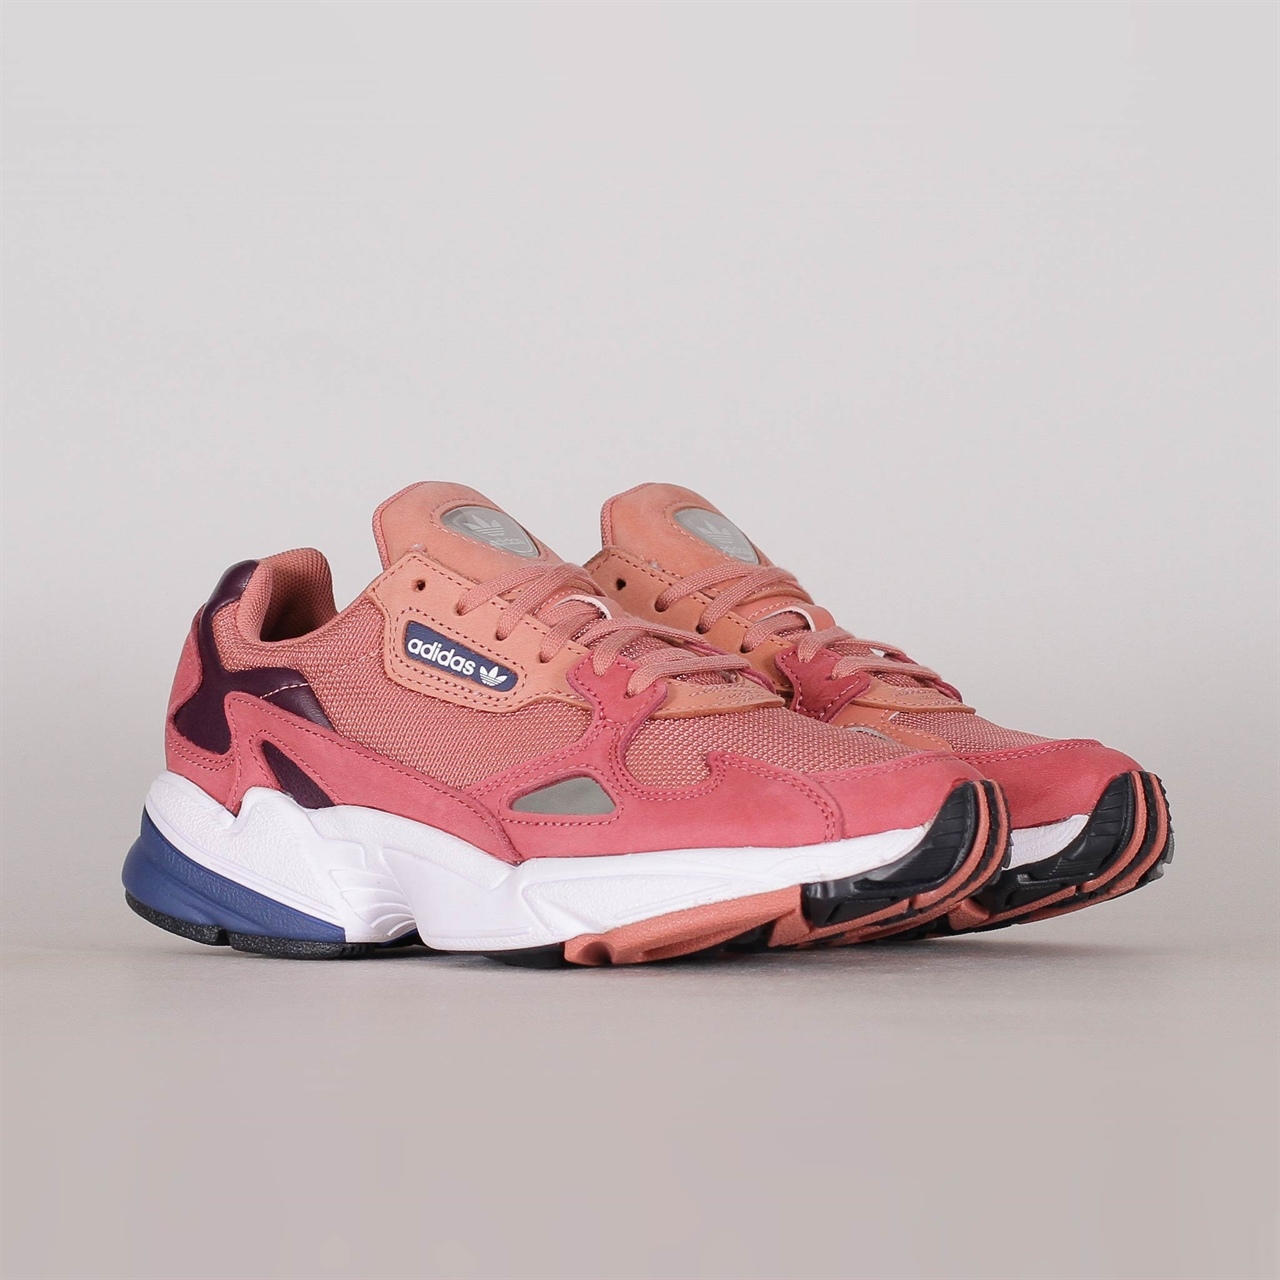 7a919591bc9 Womens Falcon (D96700). 99 99EUR   a pair. Colorway  Raw Pink Raw Pink Dark  Blue